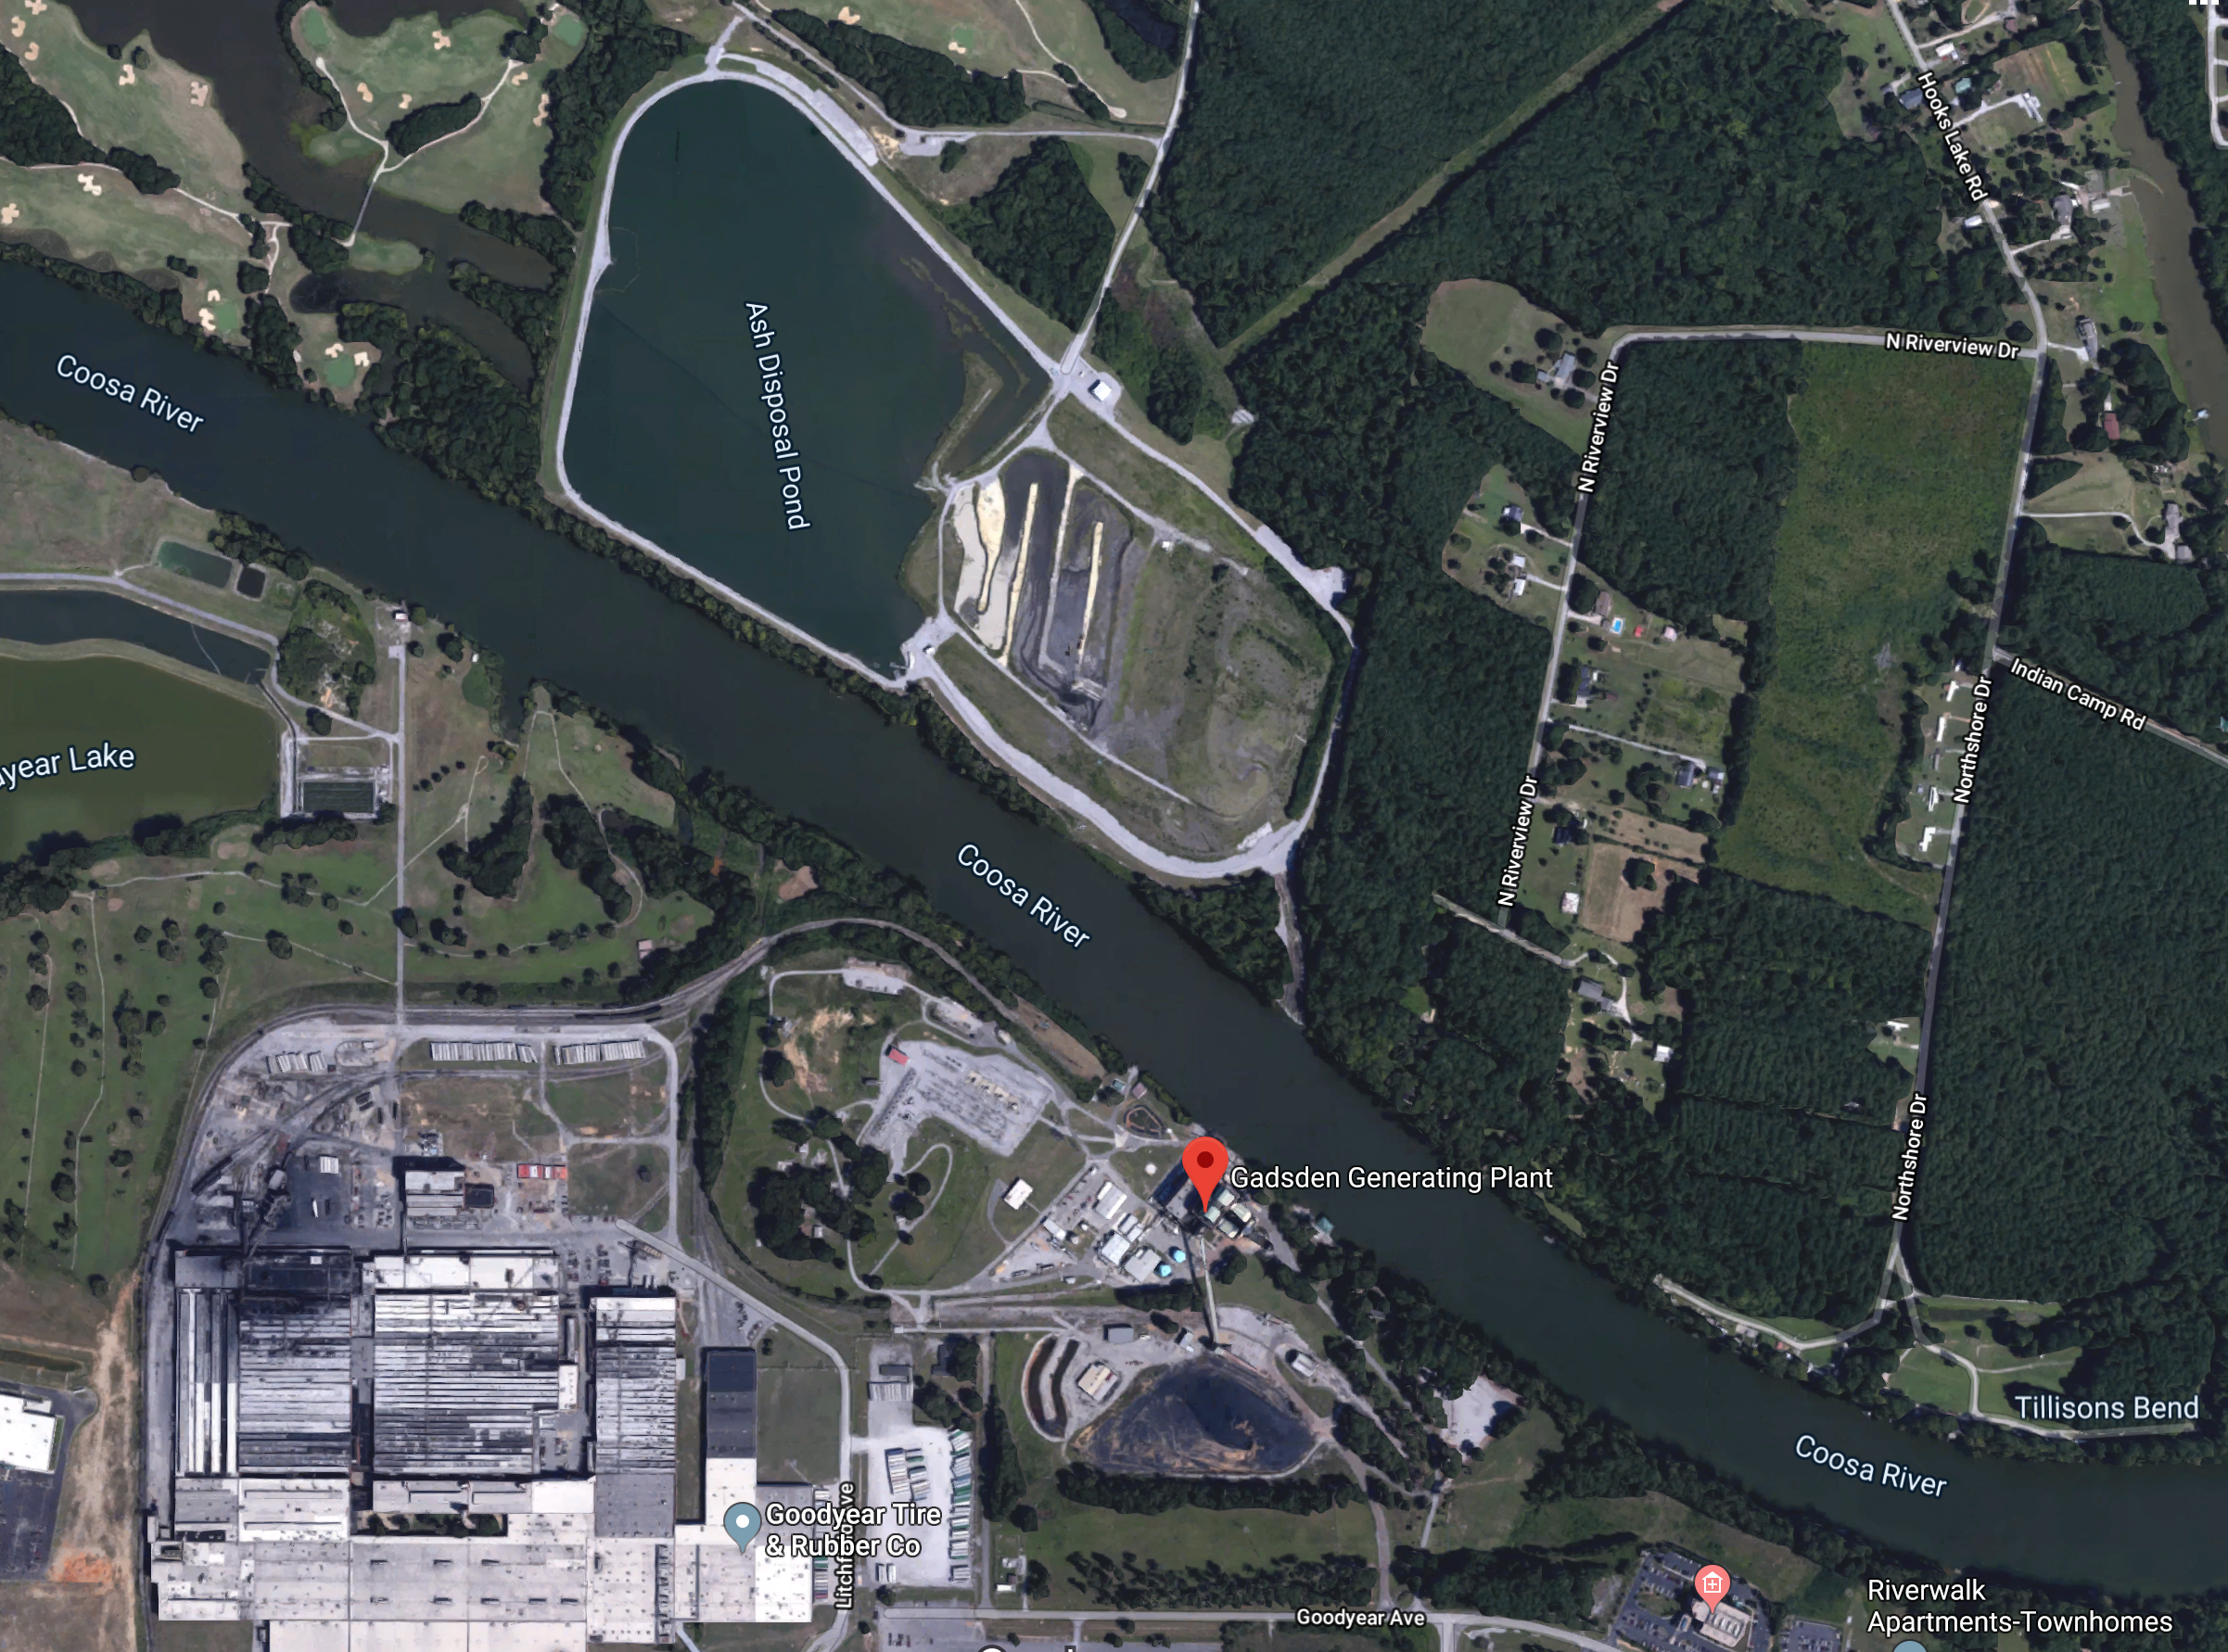 "Google satellite map of Alabama Power's Plant Gadsden in Gadsden, Alabama. The ash disposal ""pond"" is clearly labeled in the top left quadrant, dangerously close to the Coosa River."